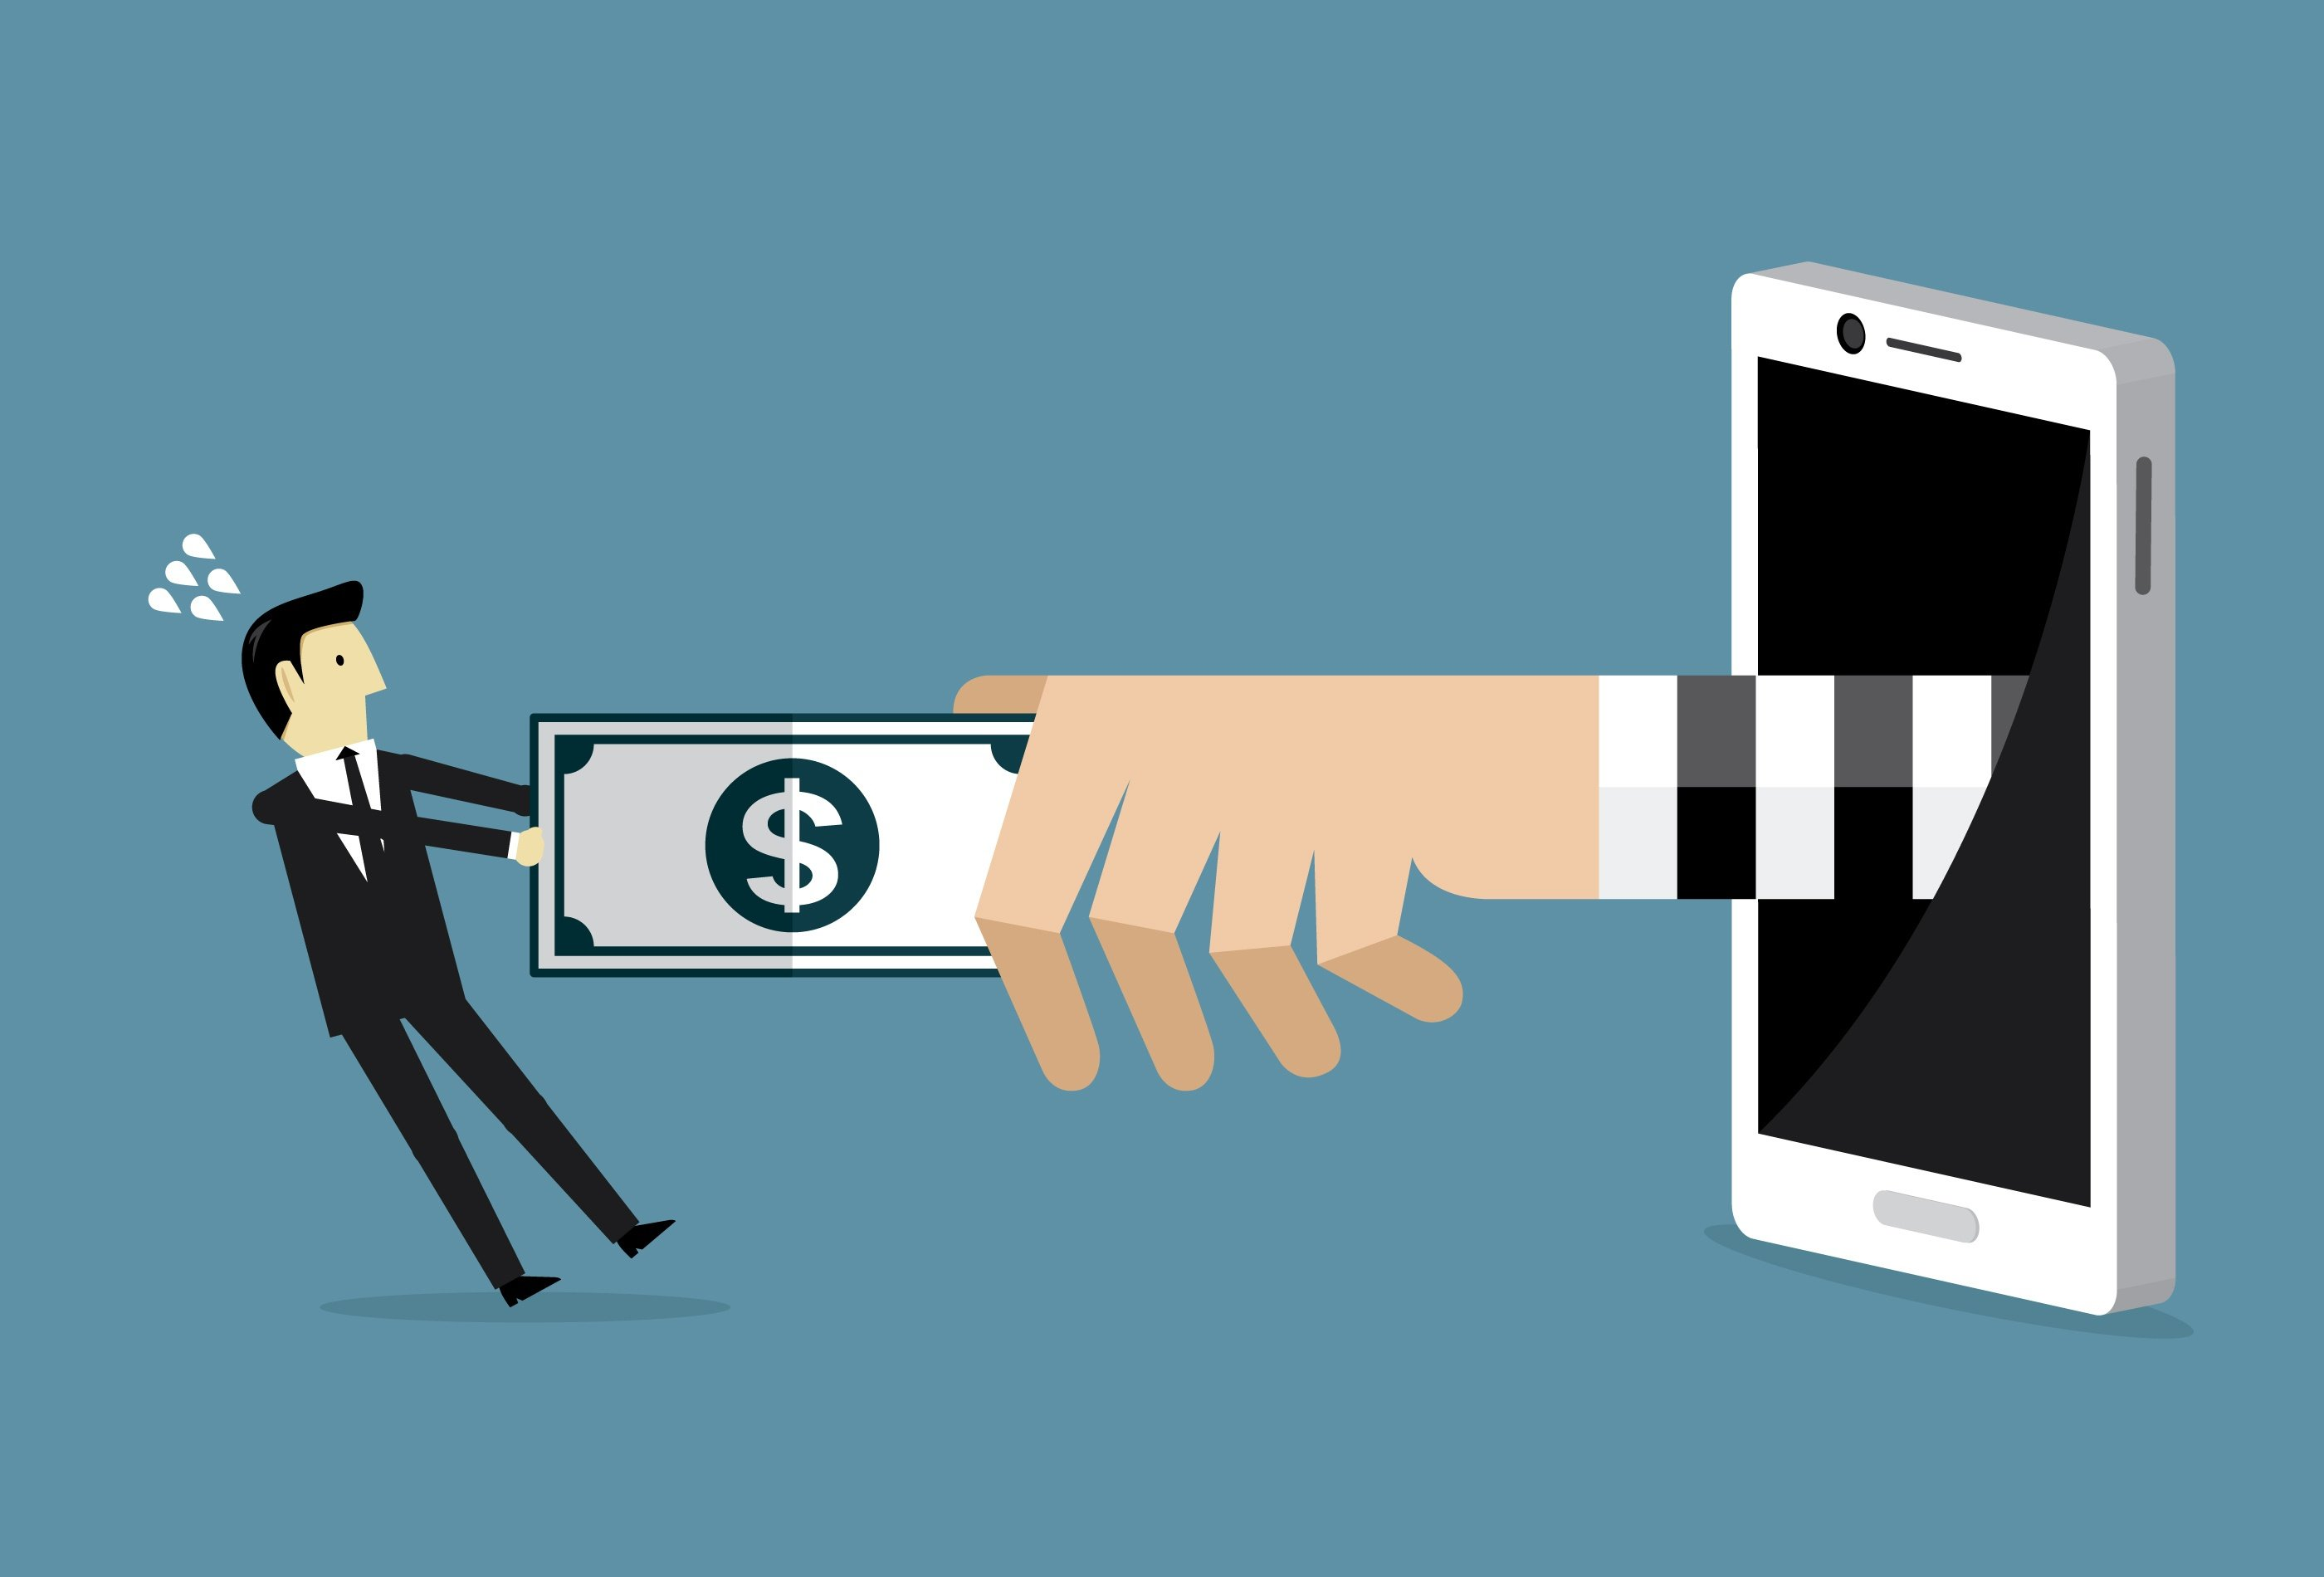 Cartoon man pulling money from hand extended out from phone to symbolize donation scams